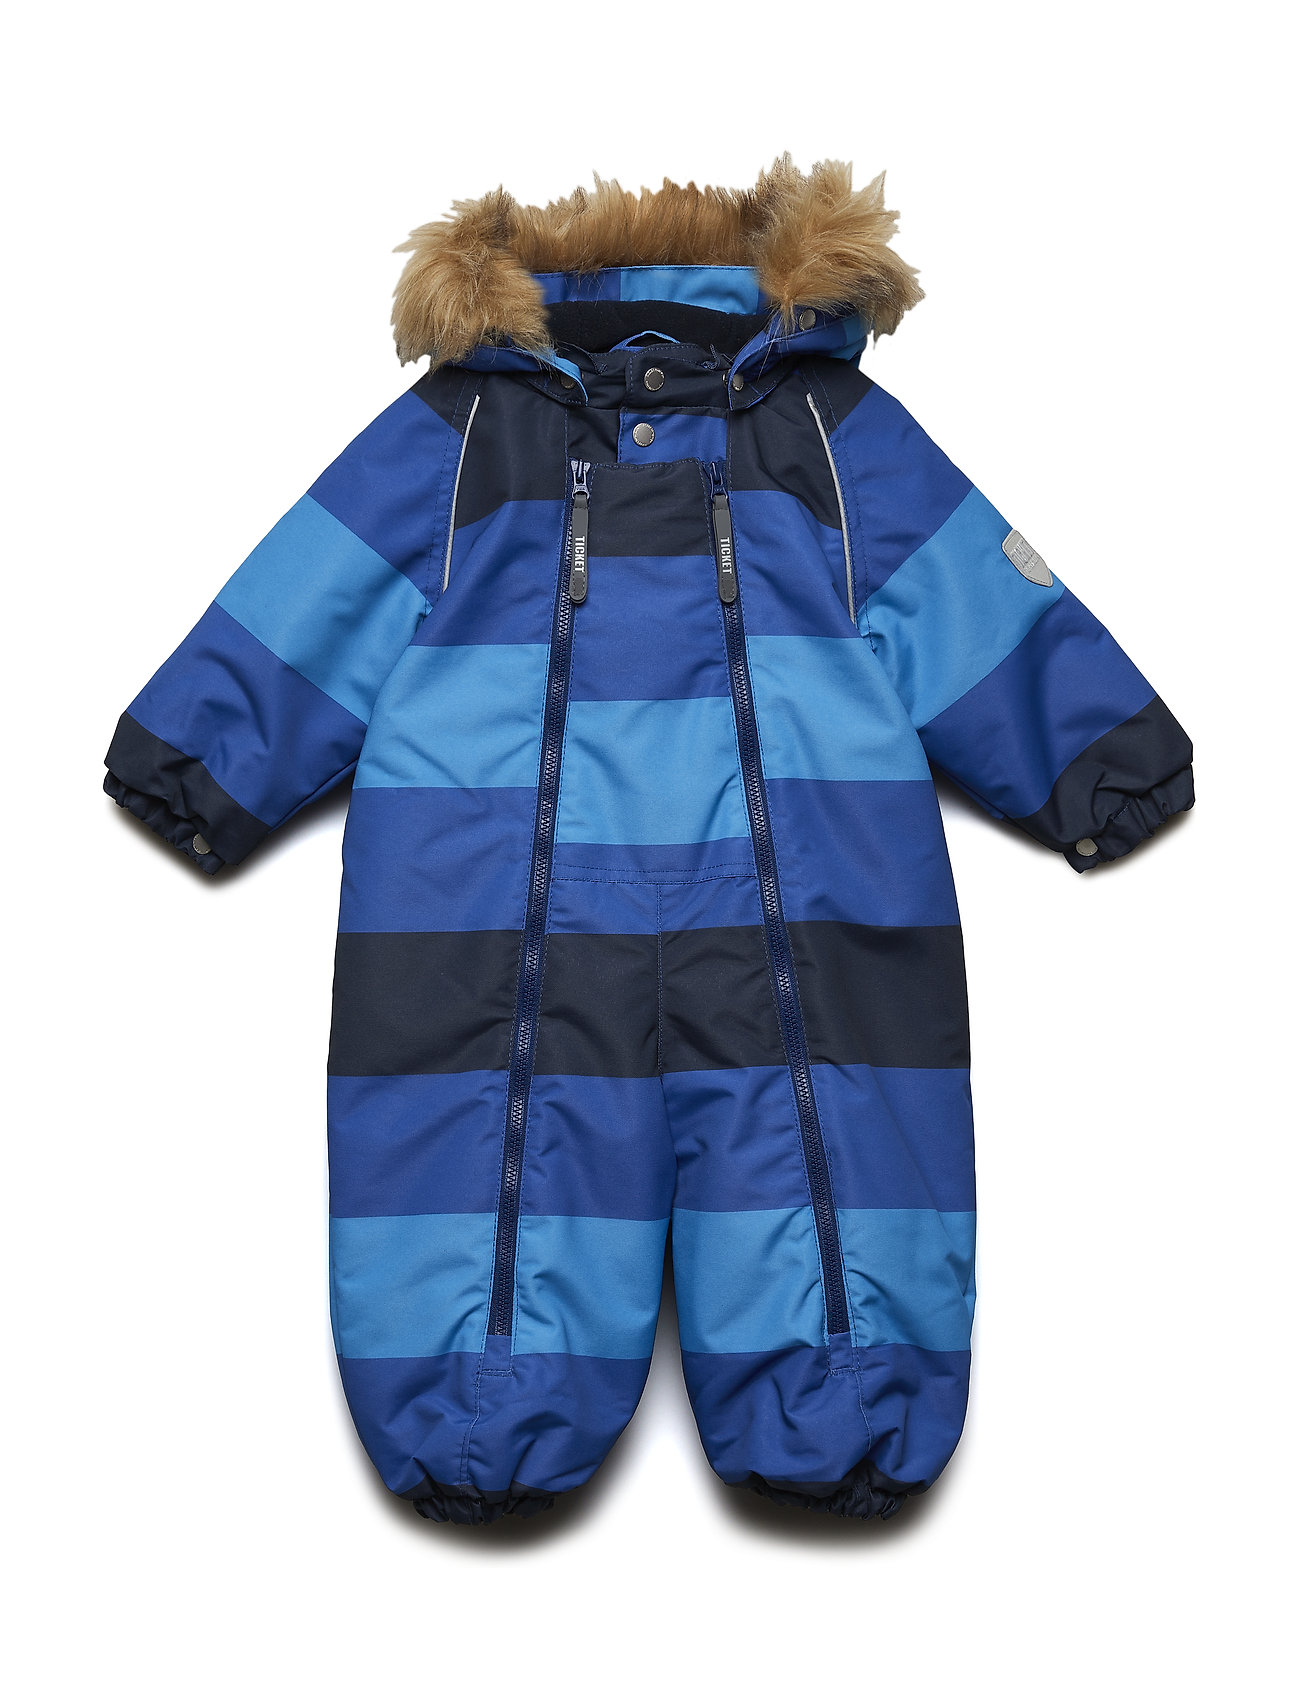 Ticket to Heaven Snowsuit Baggie with detachable hood allover - TOTAL ECLIPSE